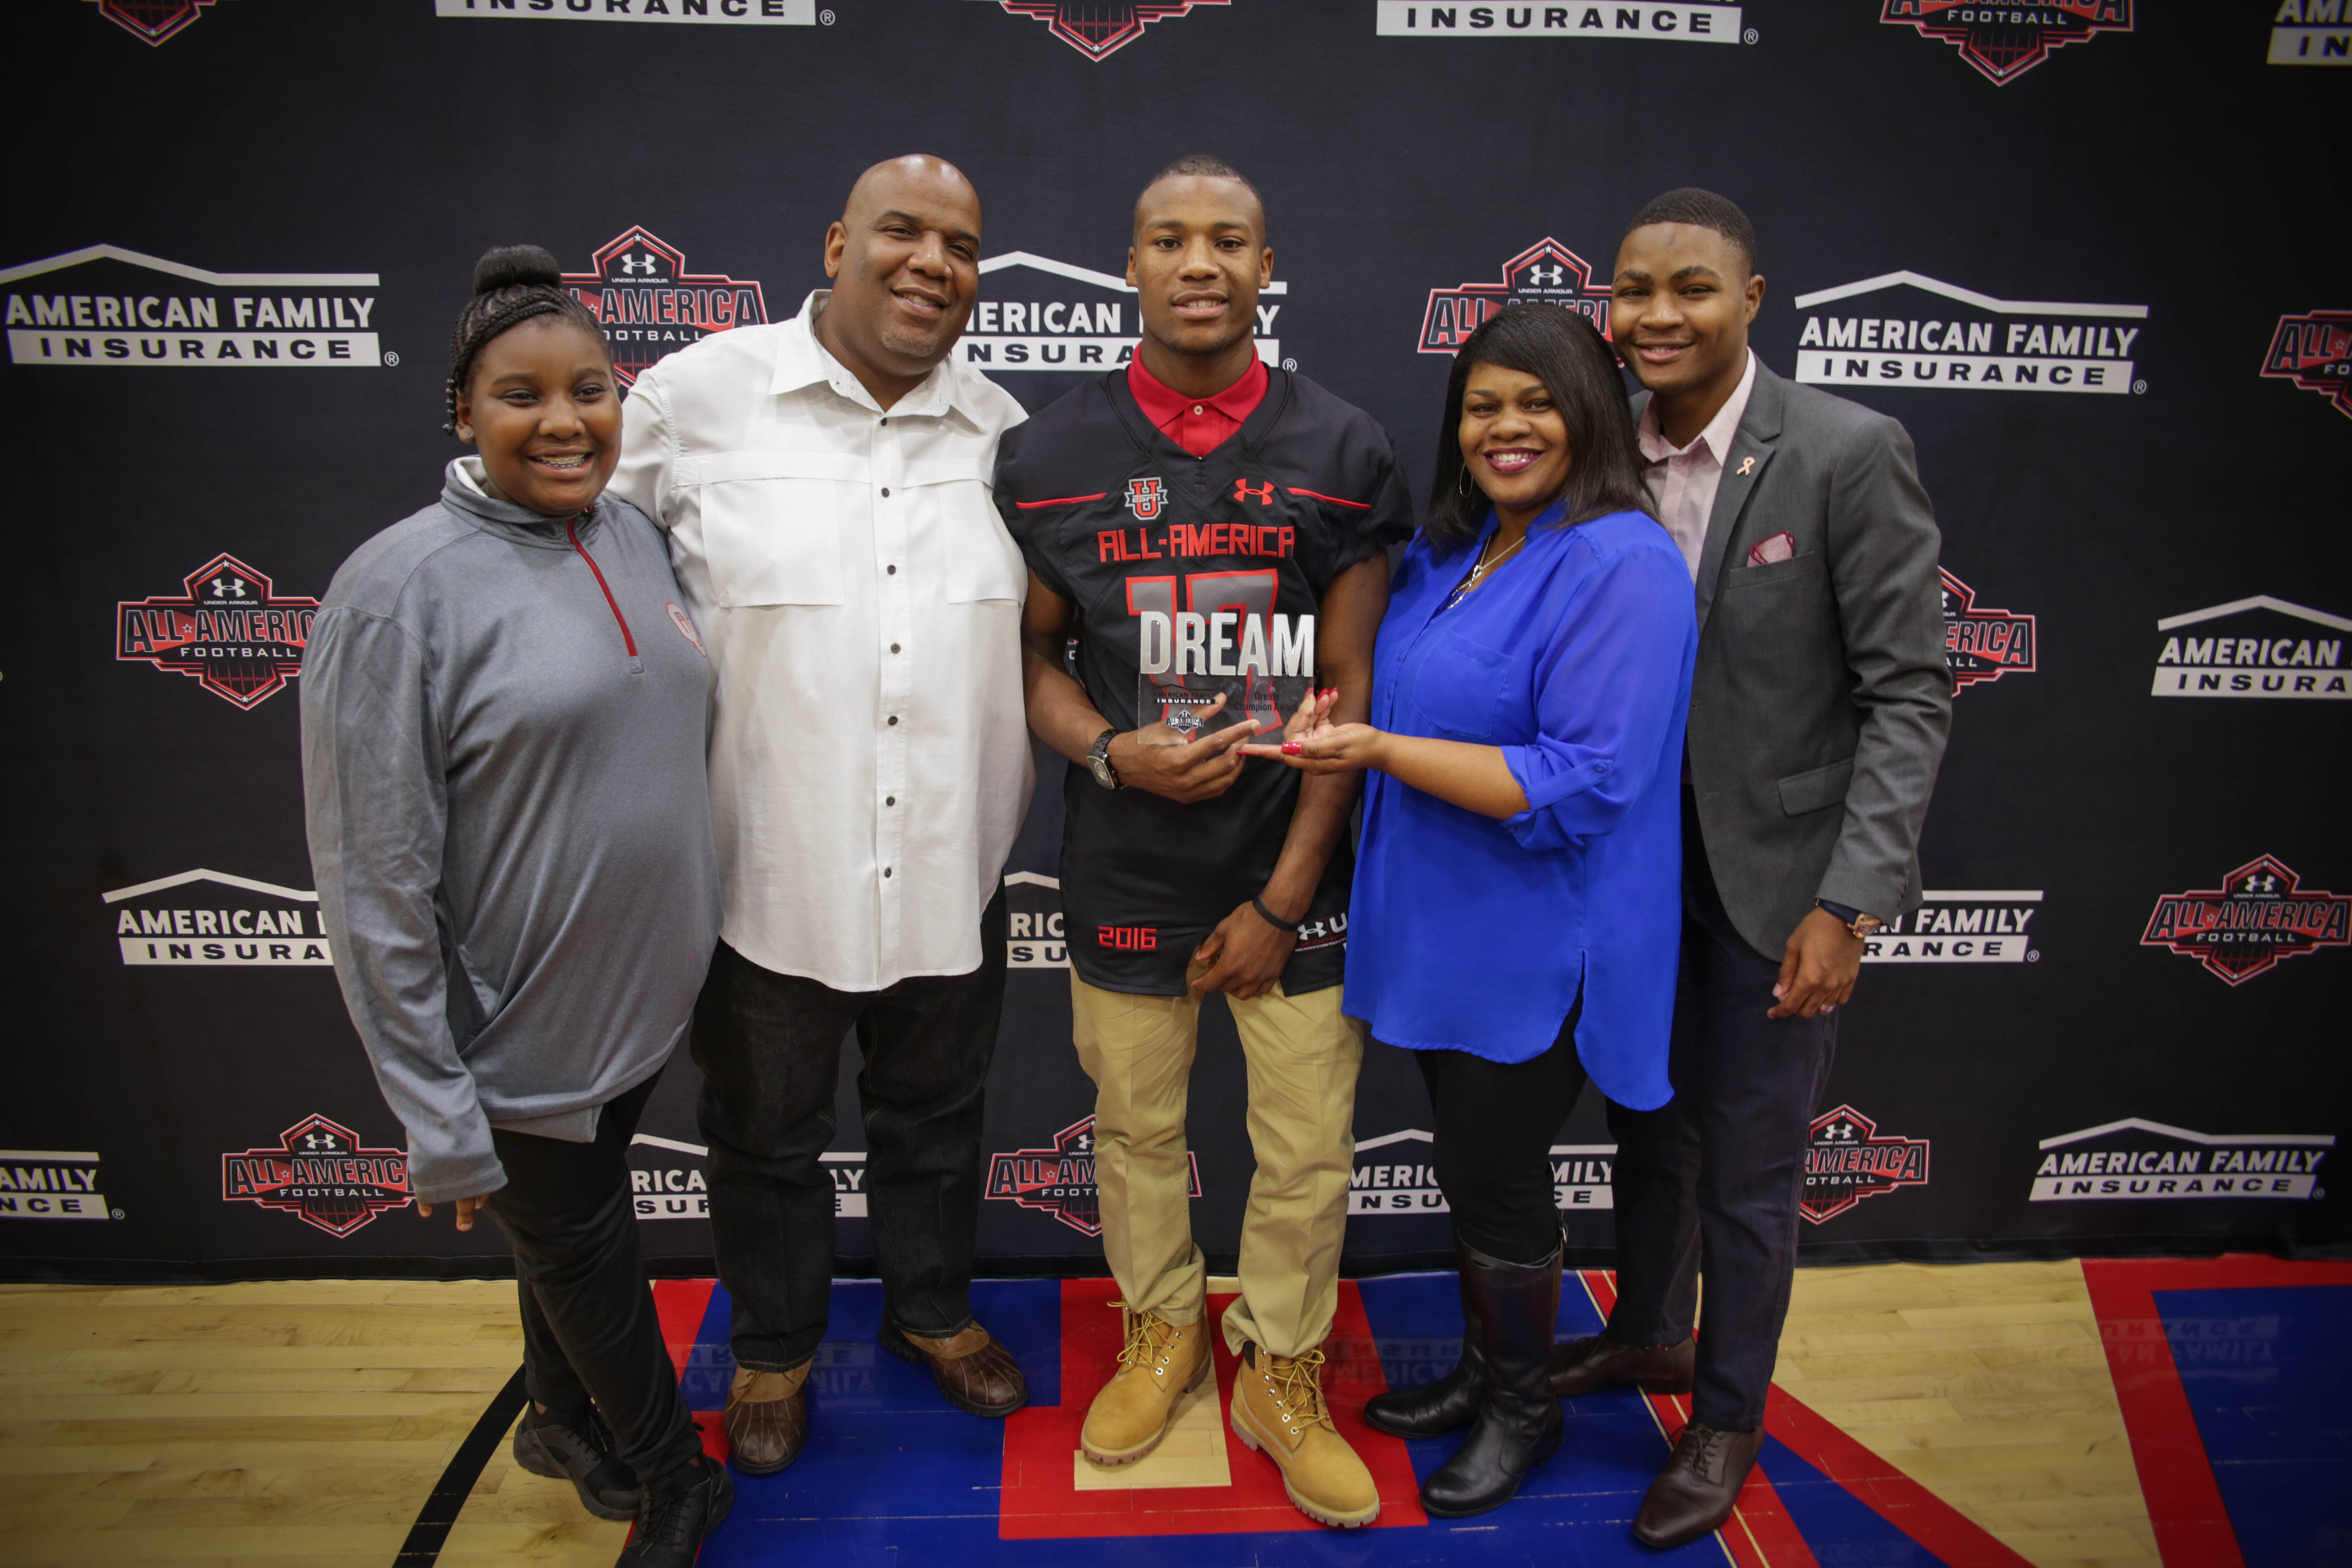 Justin presented his parents, Mitch and Tiffany Broiles, with the Dream Champion Award. (Photo: Intersport)